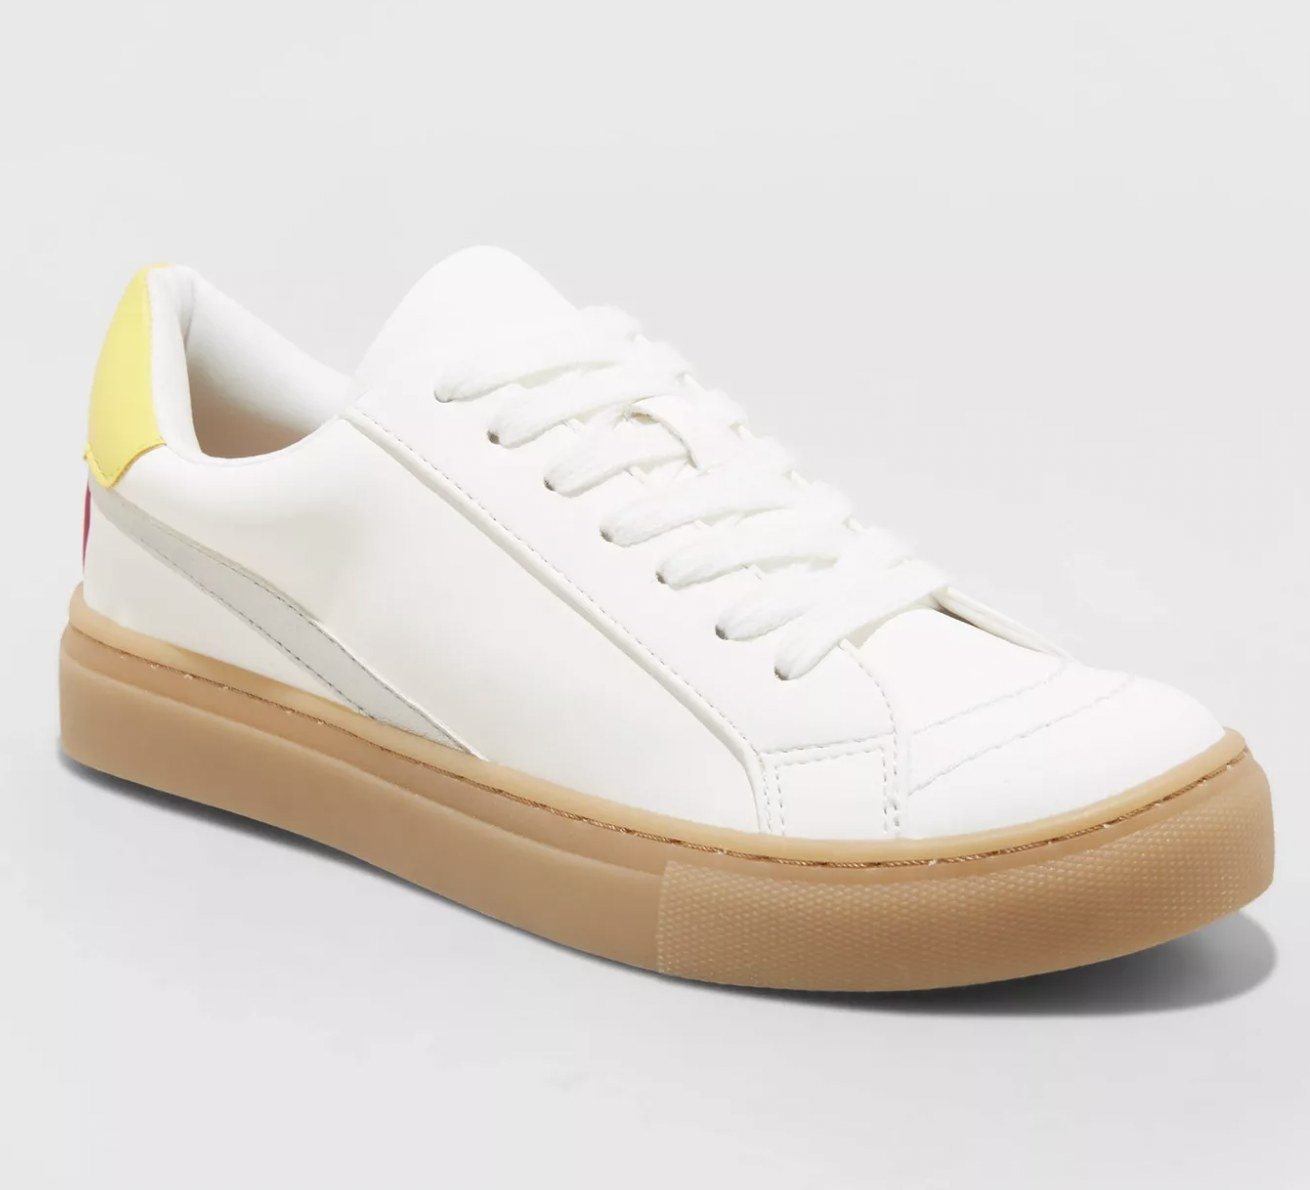 A pair of white lace-up closed toe sneakers with brown soles and a strip of yellow.